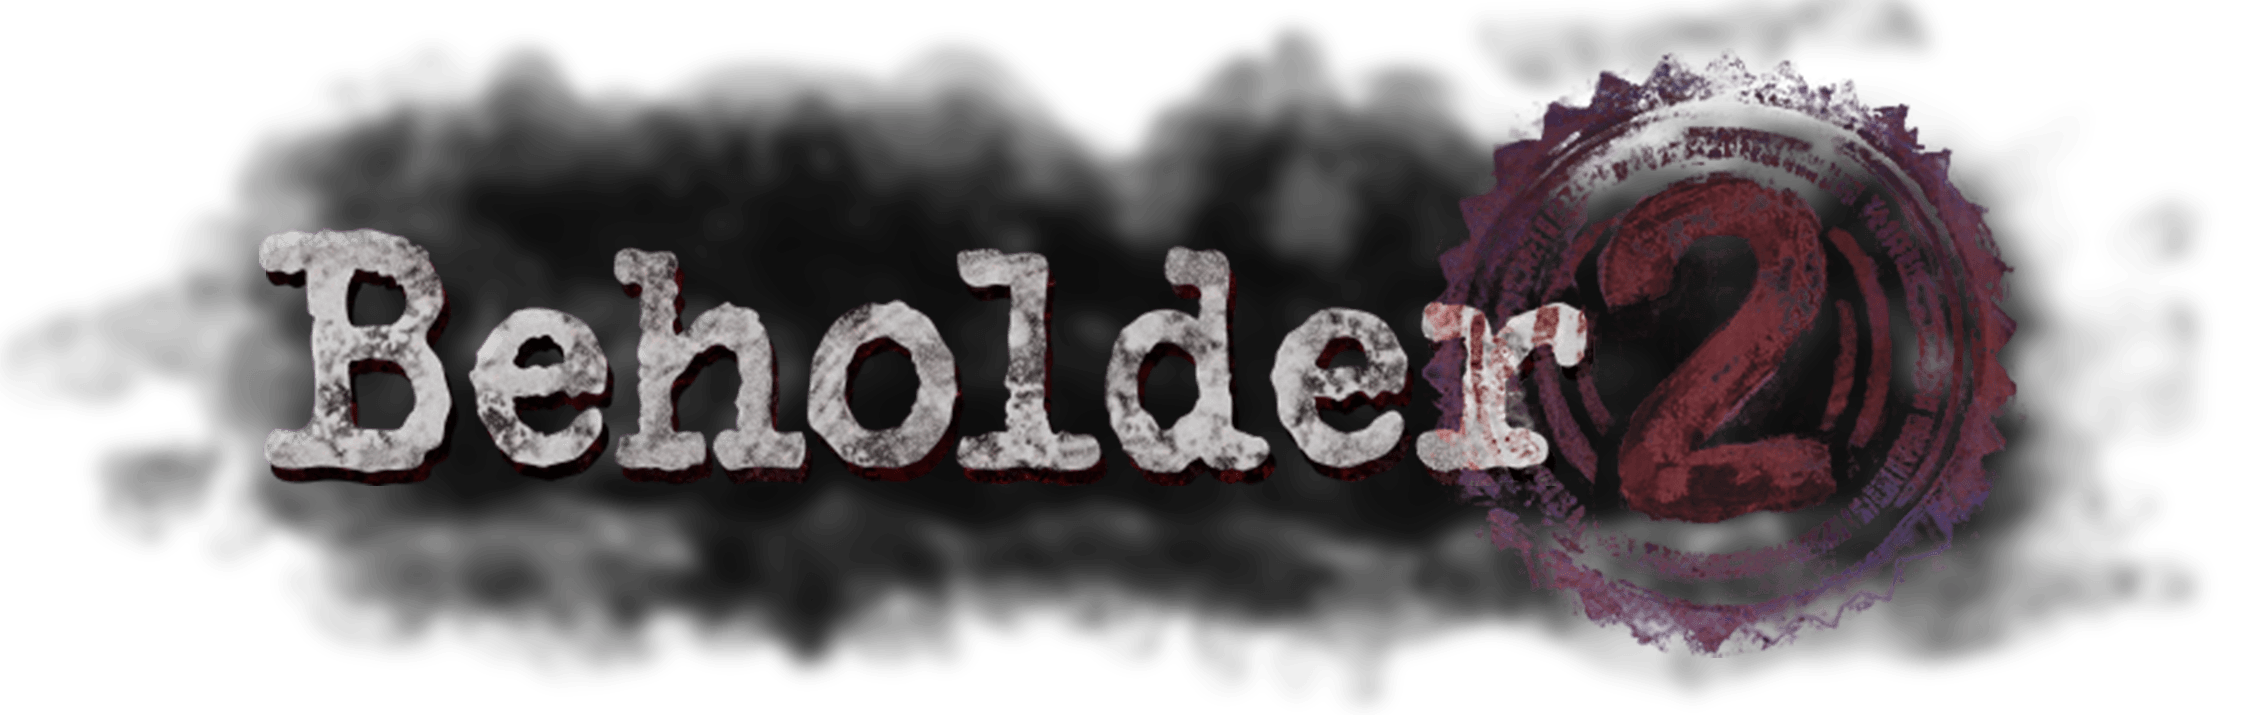 Beholder 2 Disponibile per PlayStation 4 16